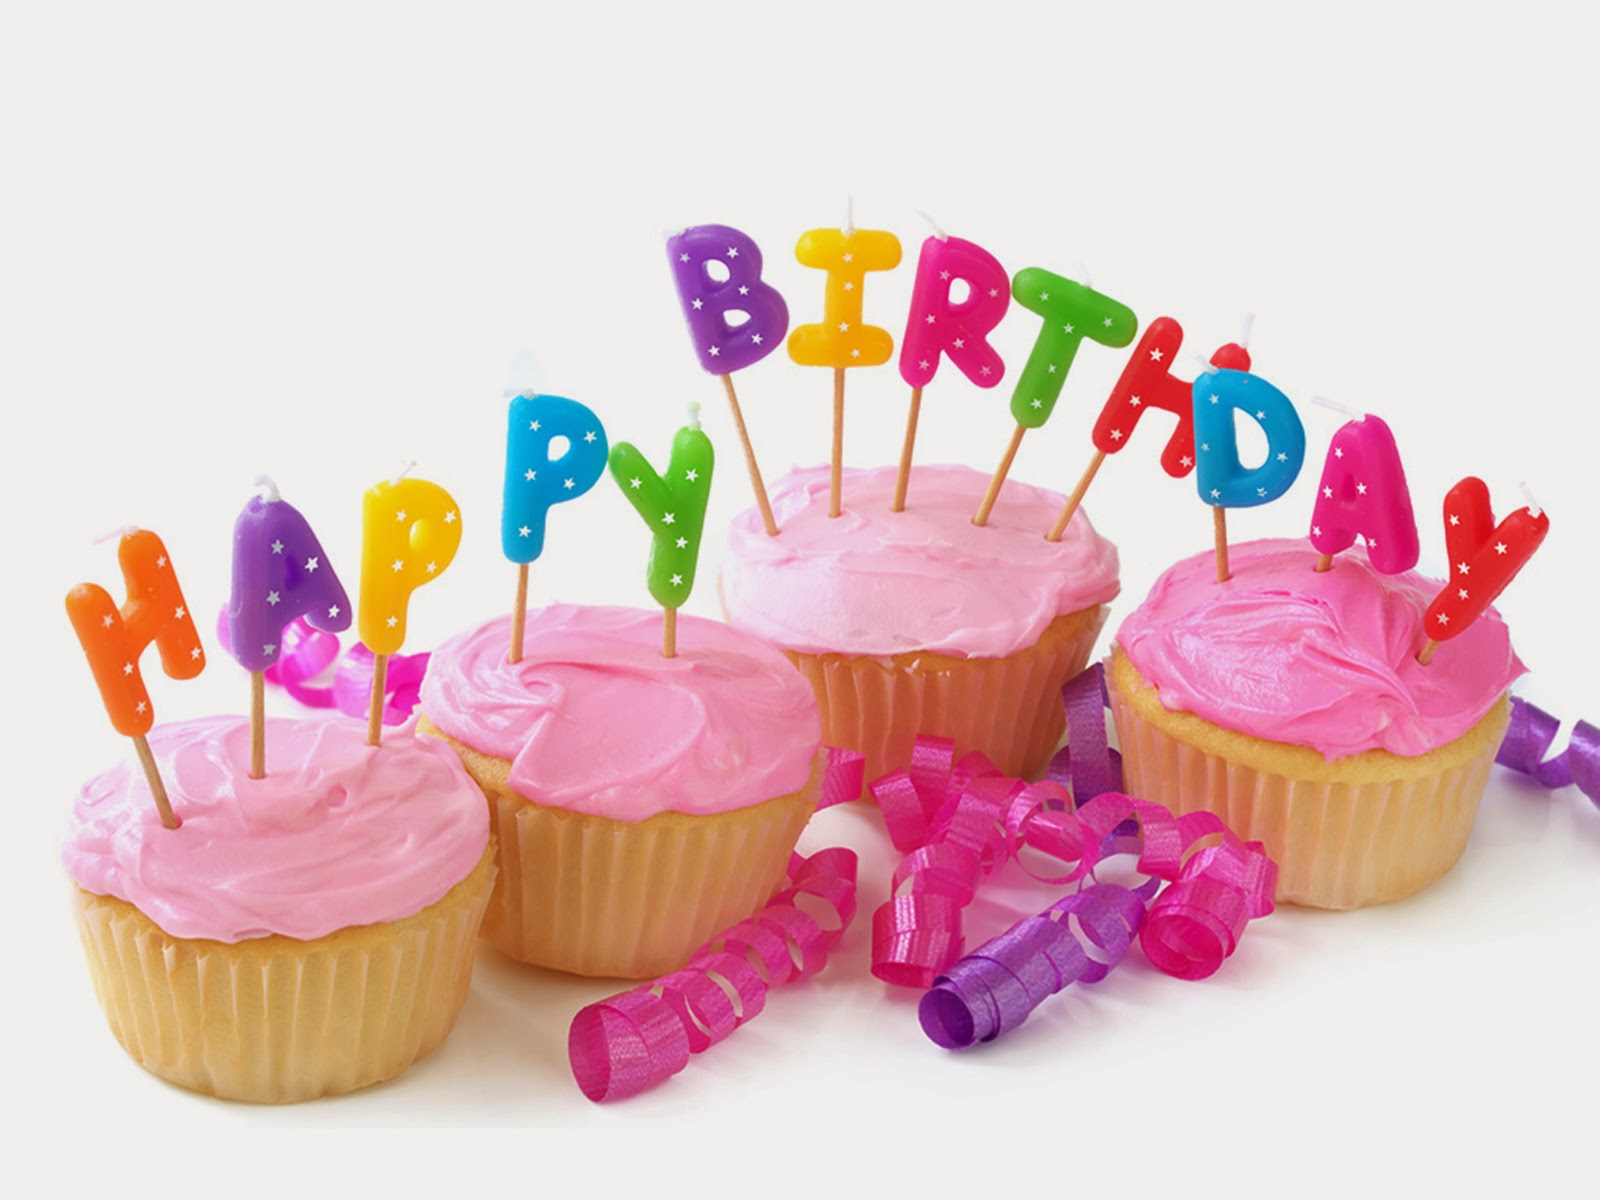 happy-birthday-pink-cup-cake-picture-images-whatsapp-sharing-1600x1200.jpg